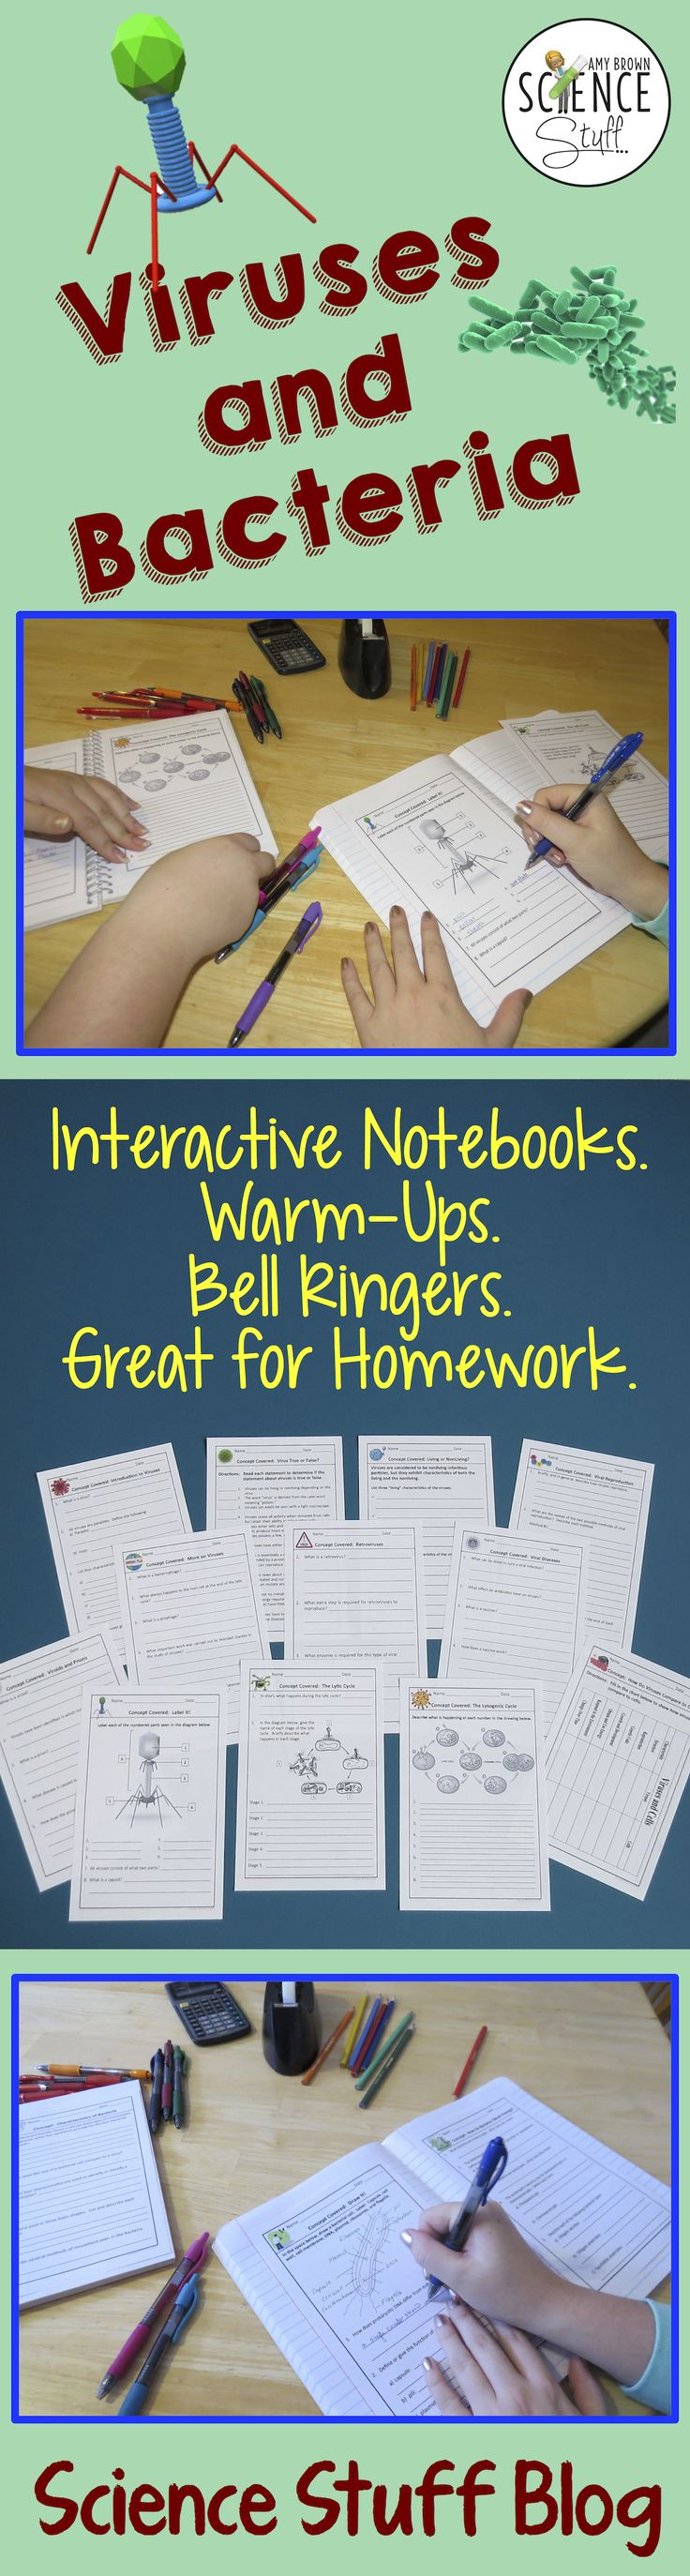 Science Stuff Blog: Interactive notebook pages for viruses and bacteria